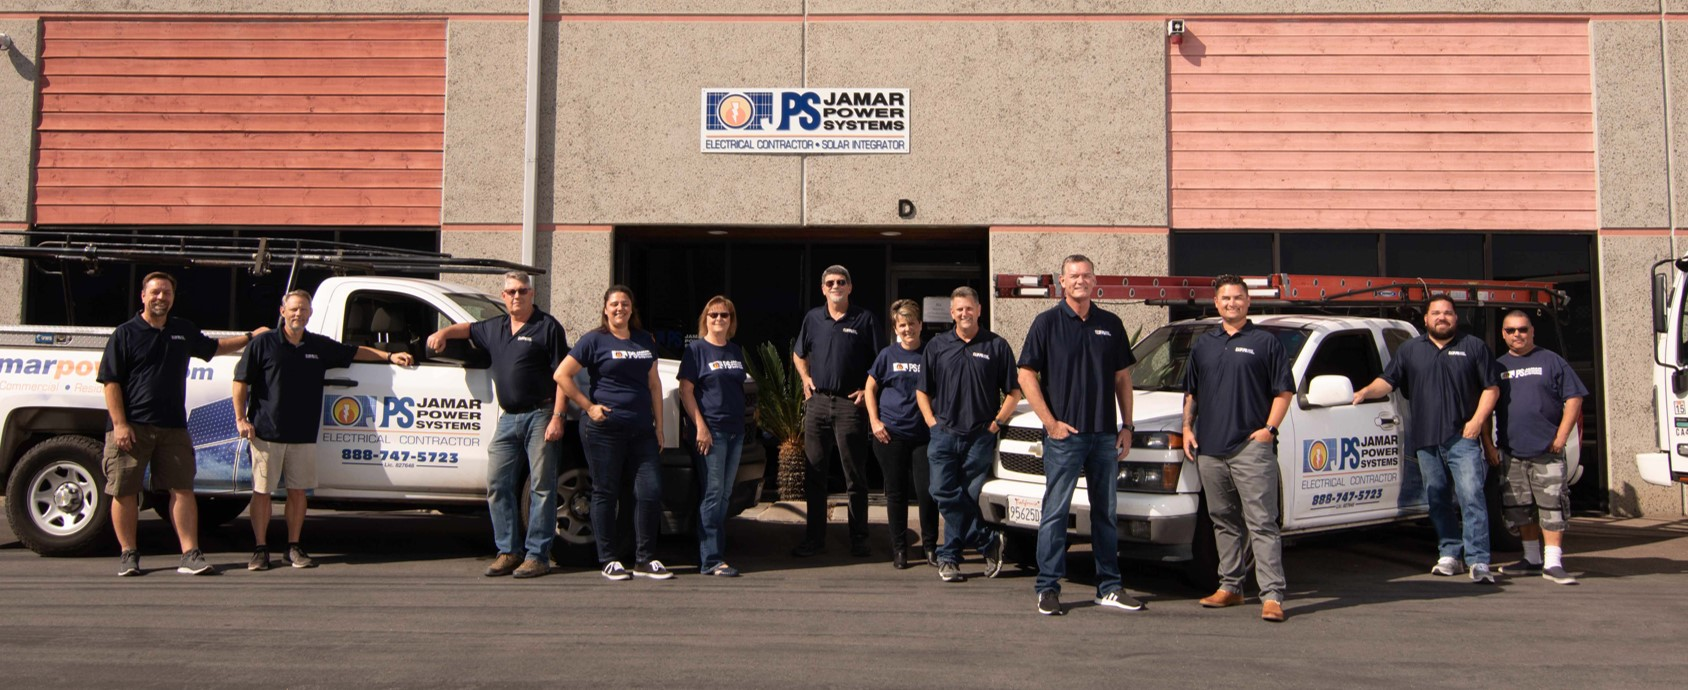 Jamar Power Systems Team Photo